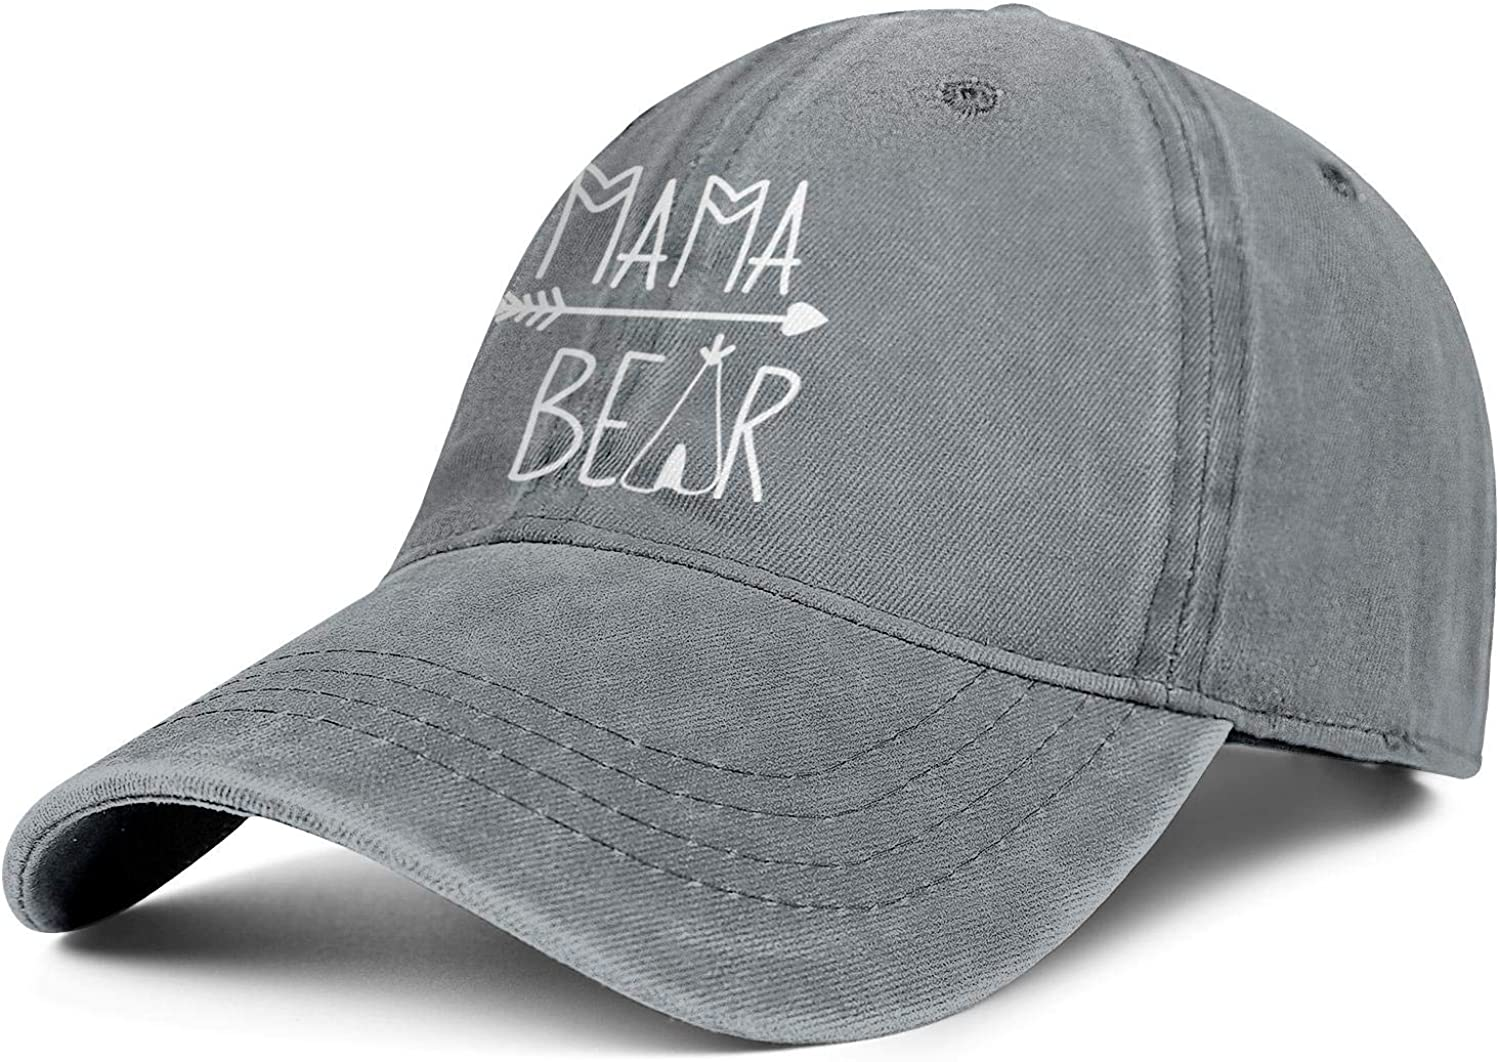 Mama Bear Ponytail Baseball Cap Messy Bun Vintage Washed Distressed Twill Plain Hat for Women Gifts for Mother's Day…